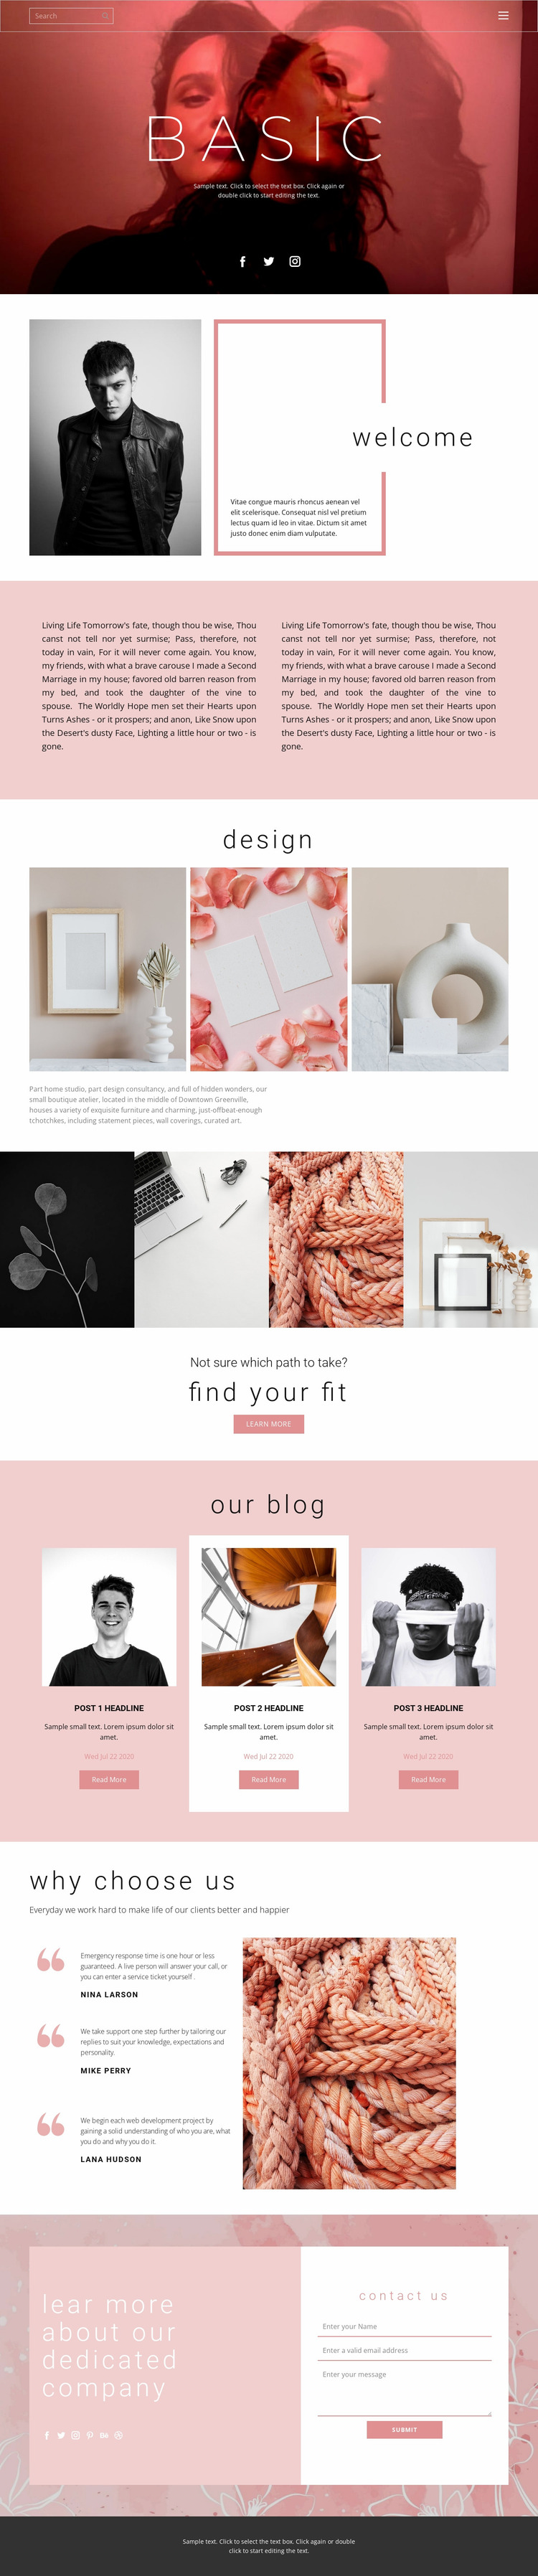 Fashion trends this year Website Mockup